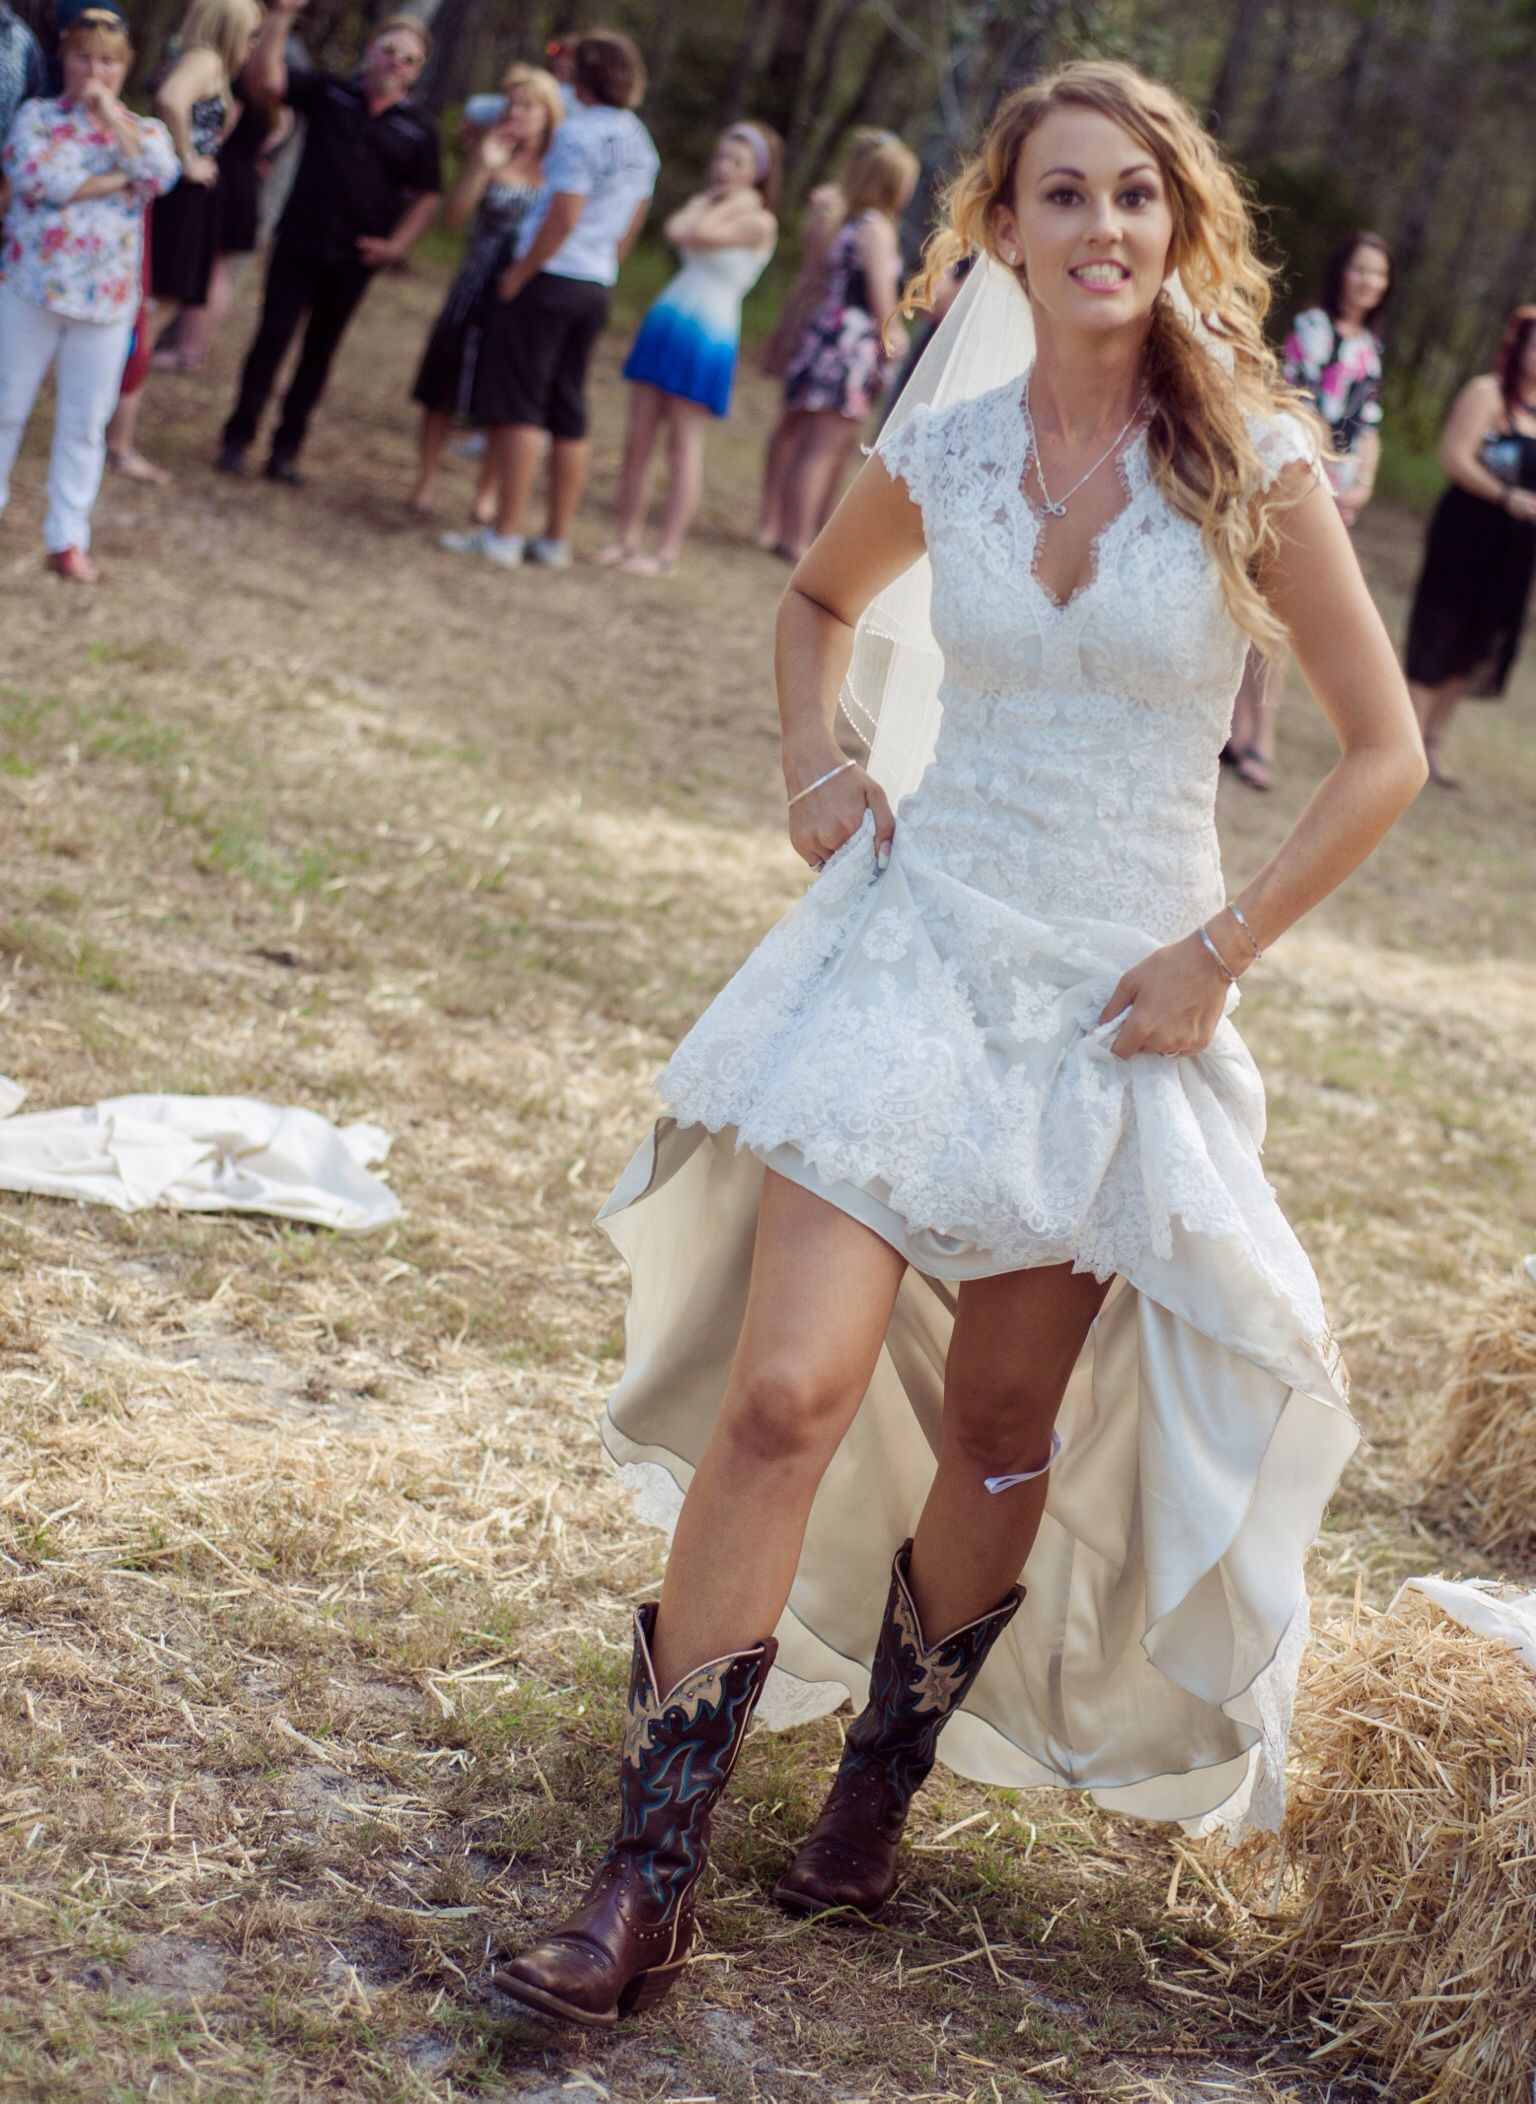 Country wedding dress with boots | casamento | Pinterest | Ideen für ...